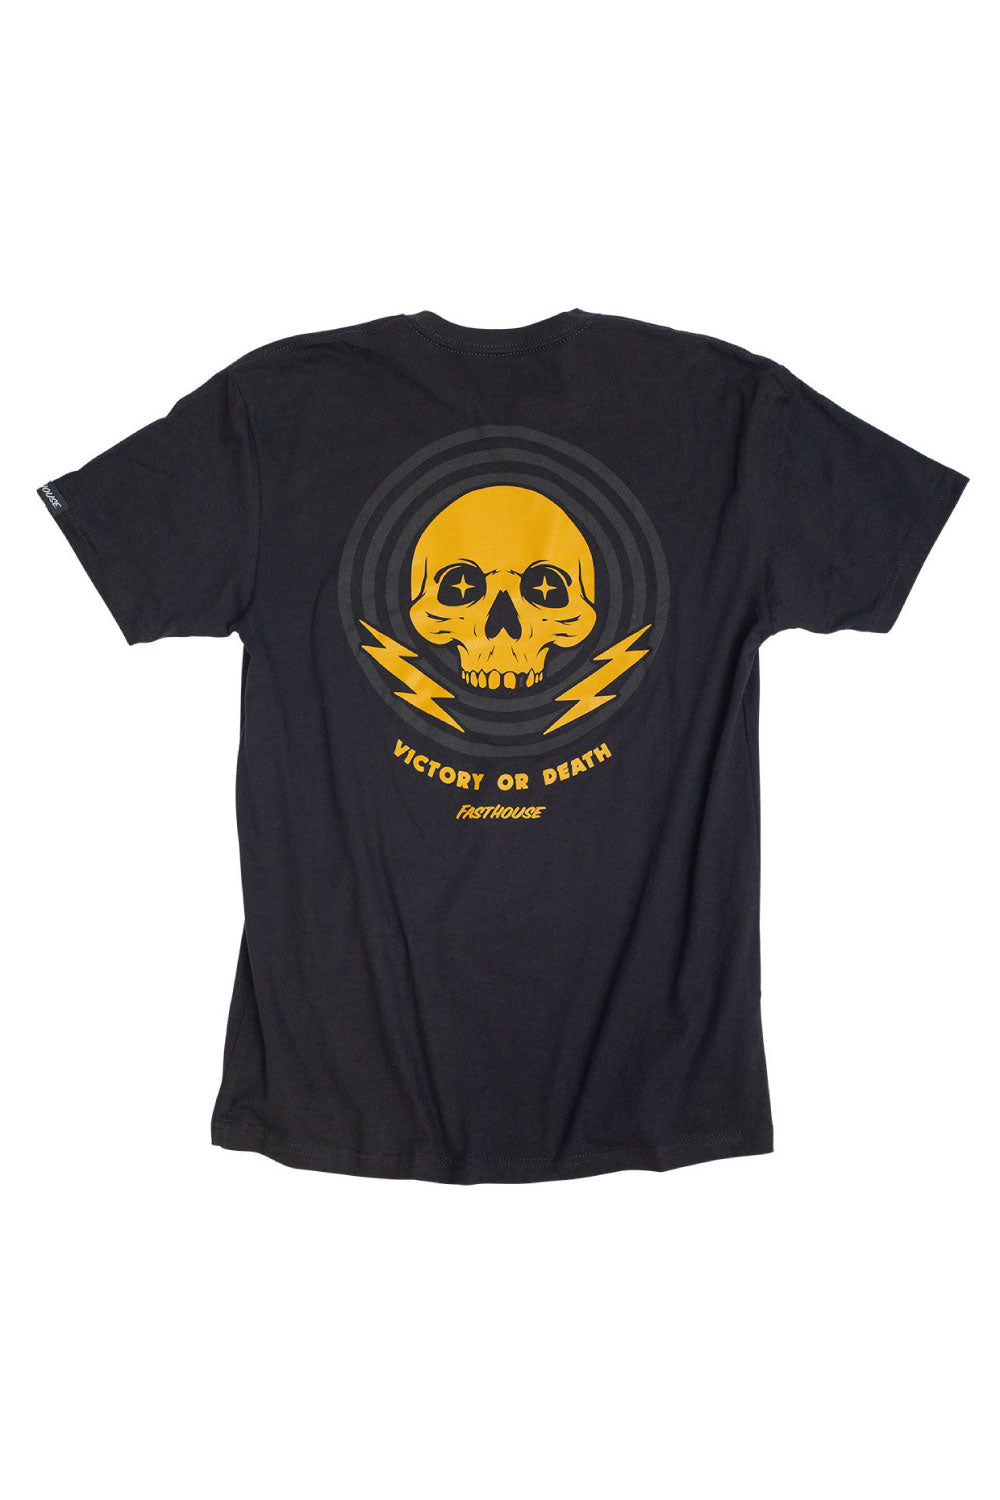 Fasthouse Victory or Death T-Shirt Black